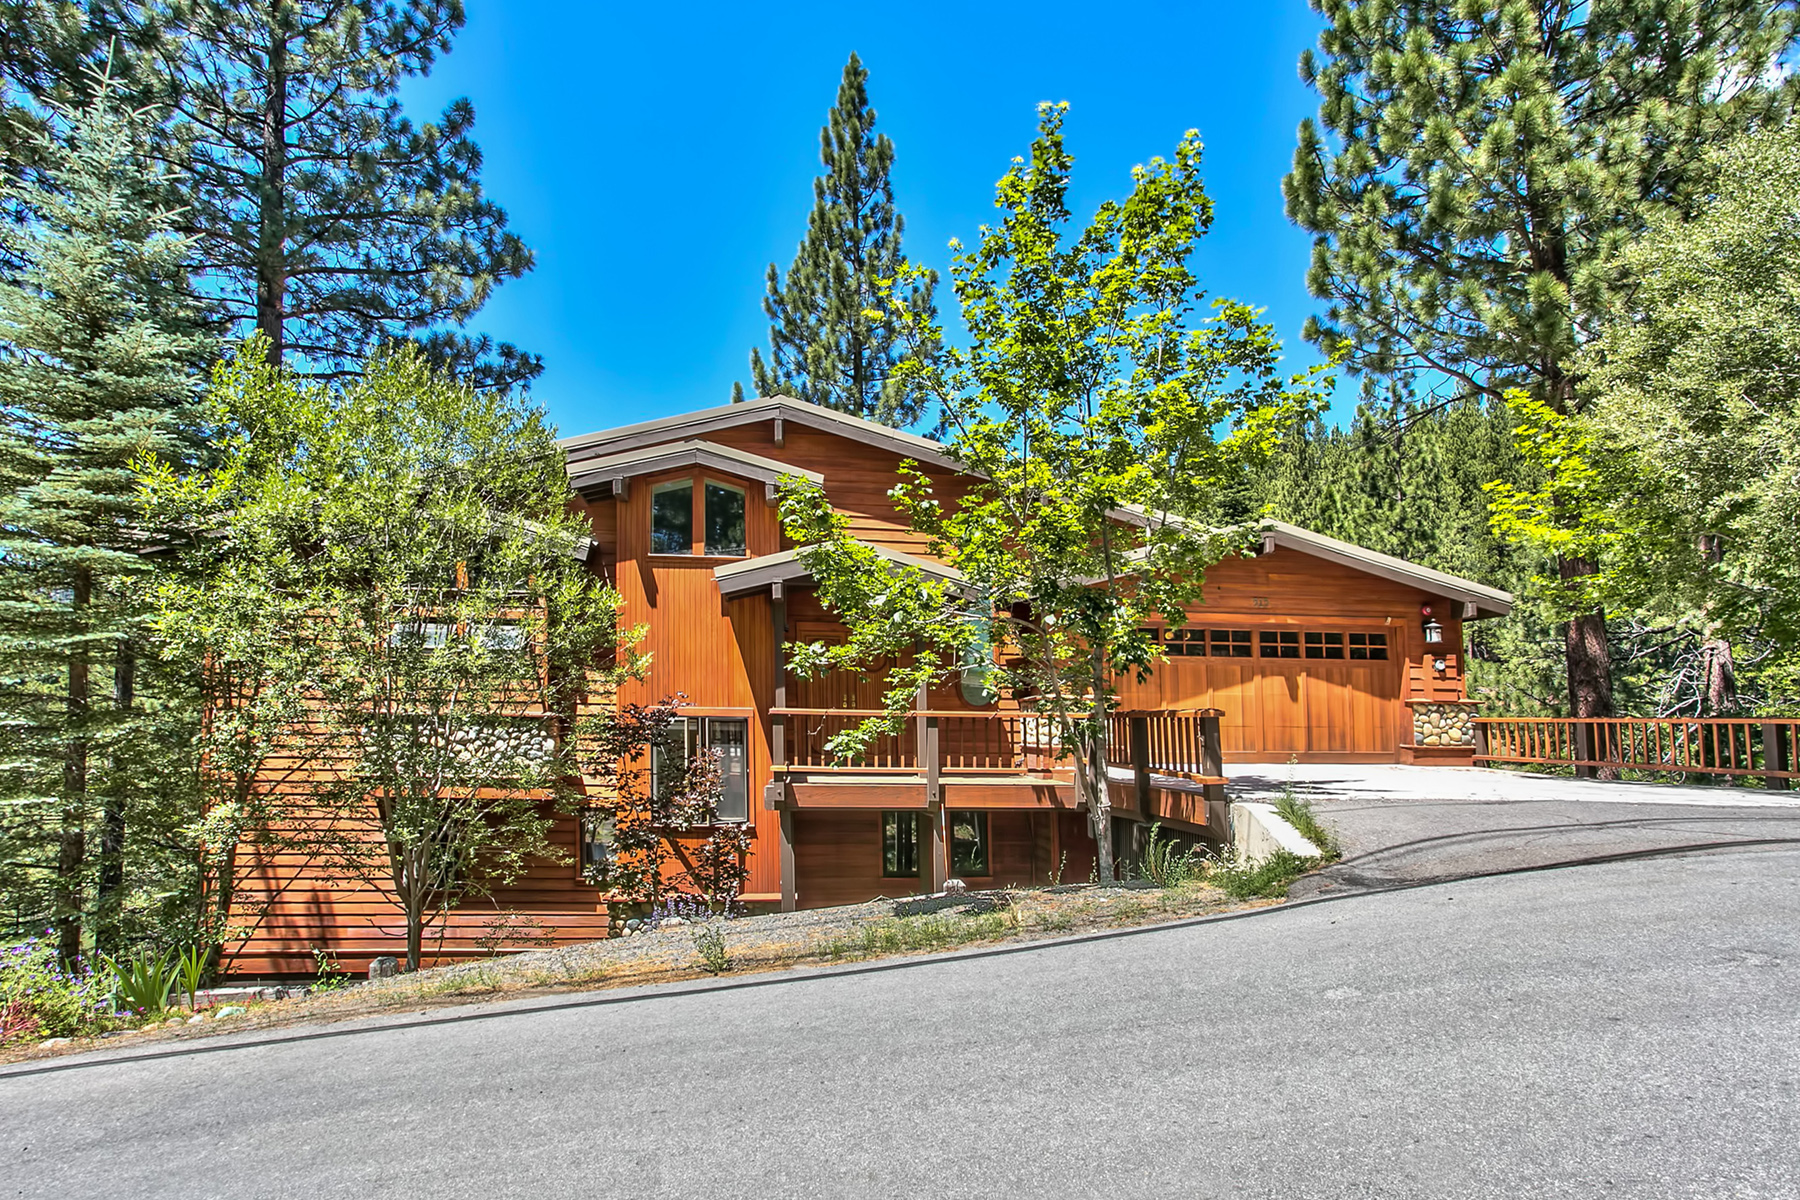 Single Family Home for Sale at 515 Sugarpine Drive Incline Village, Nevada 89451 United States